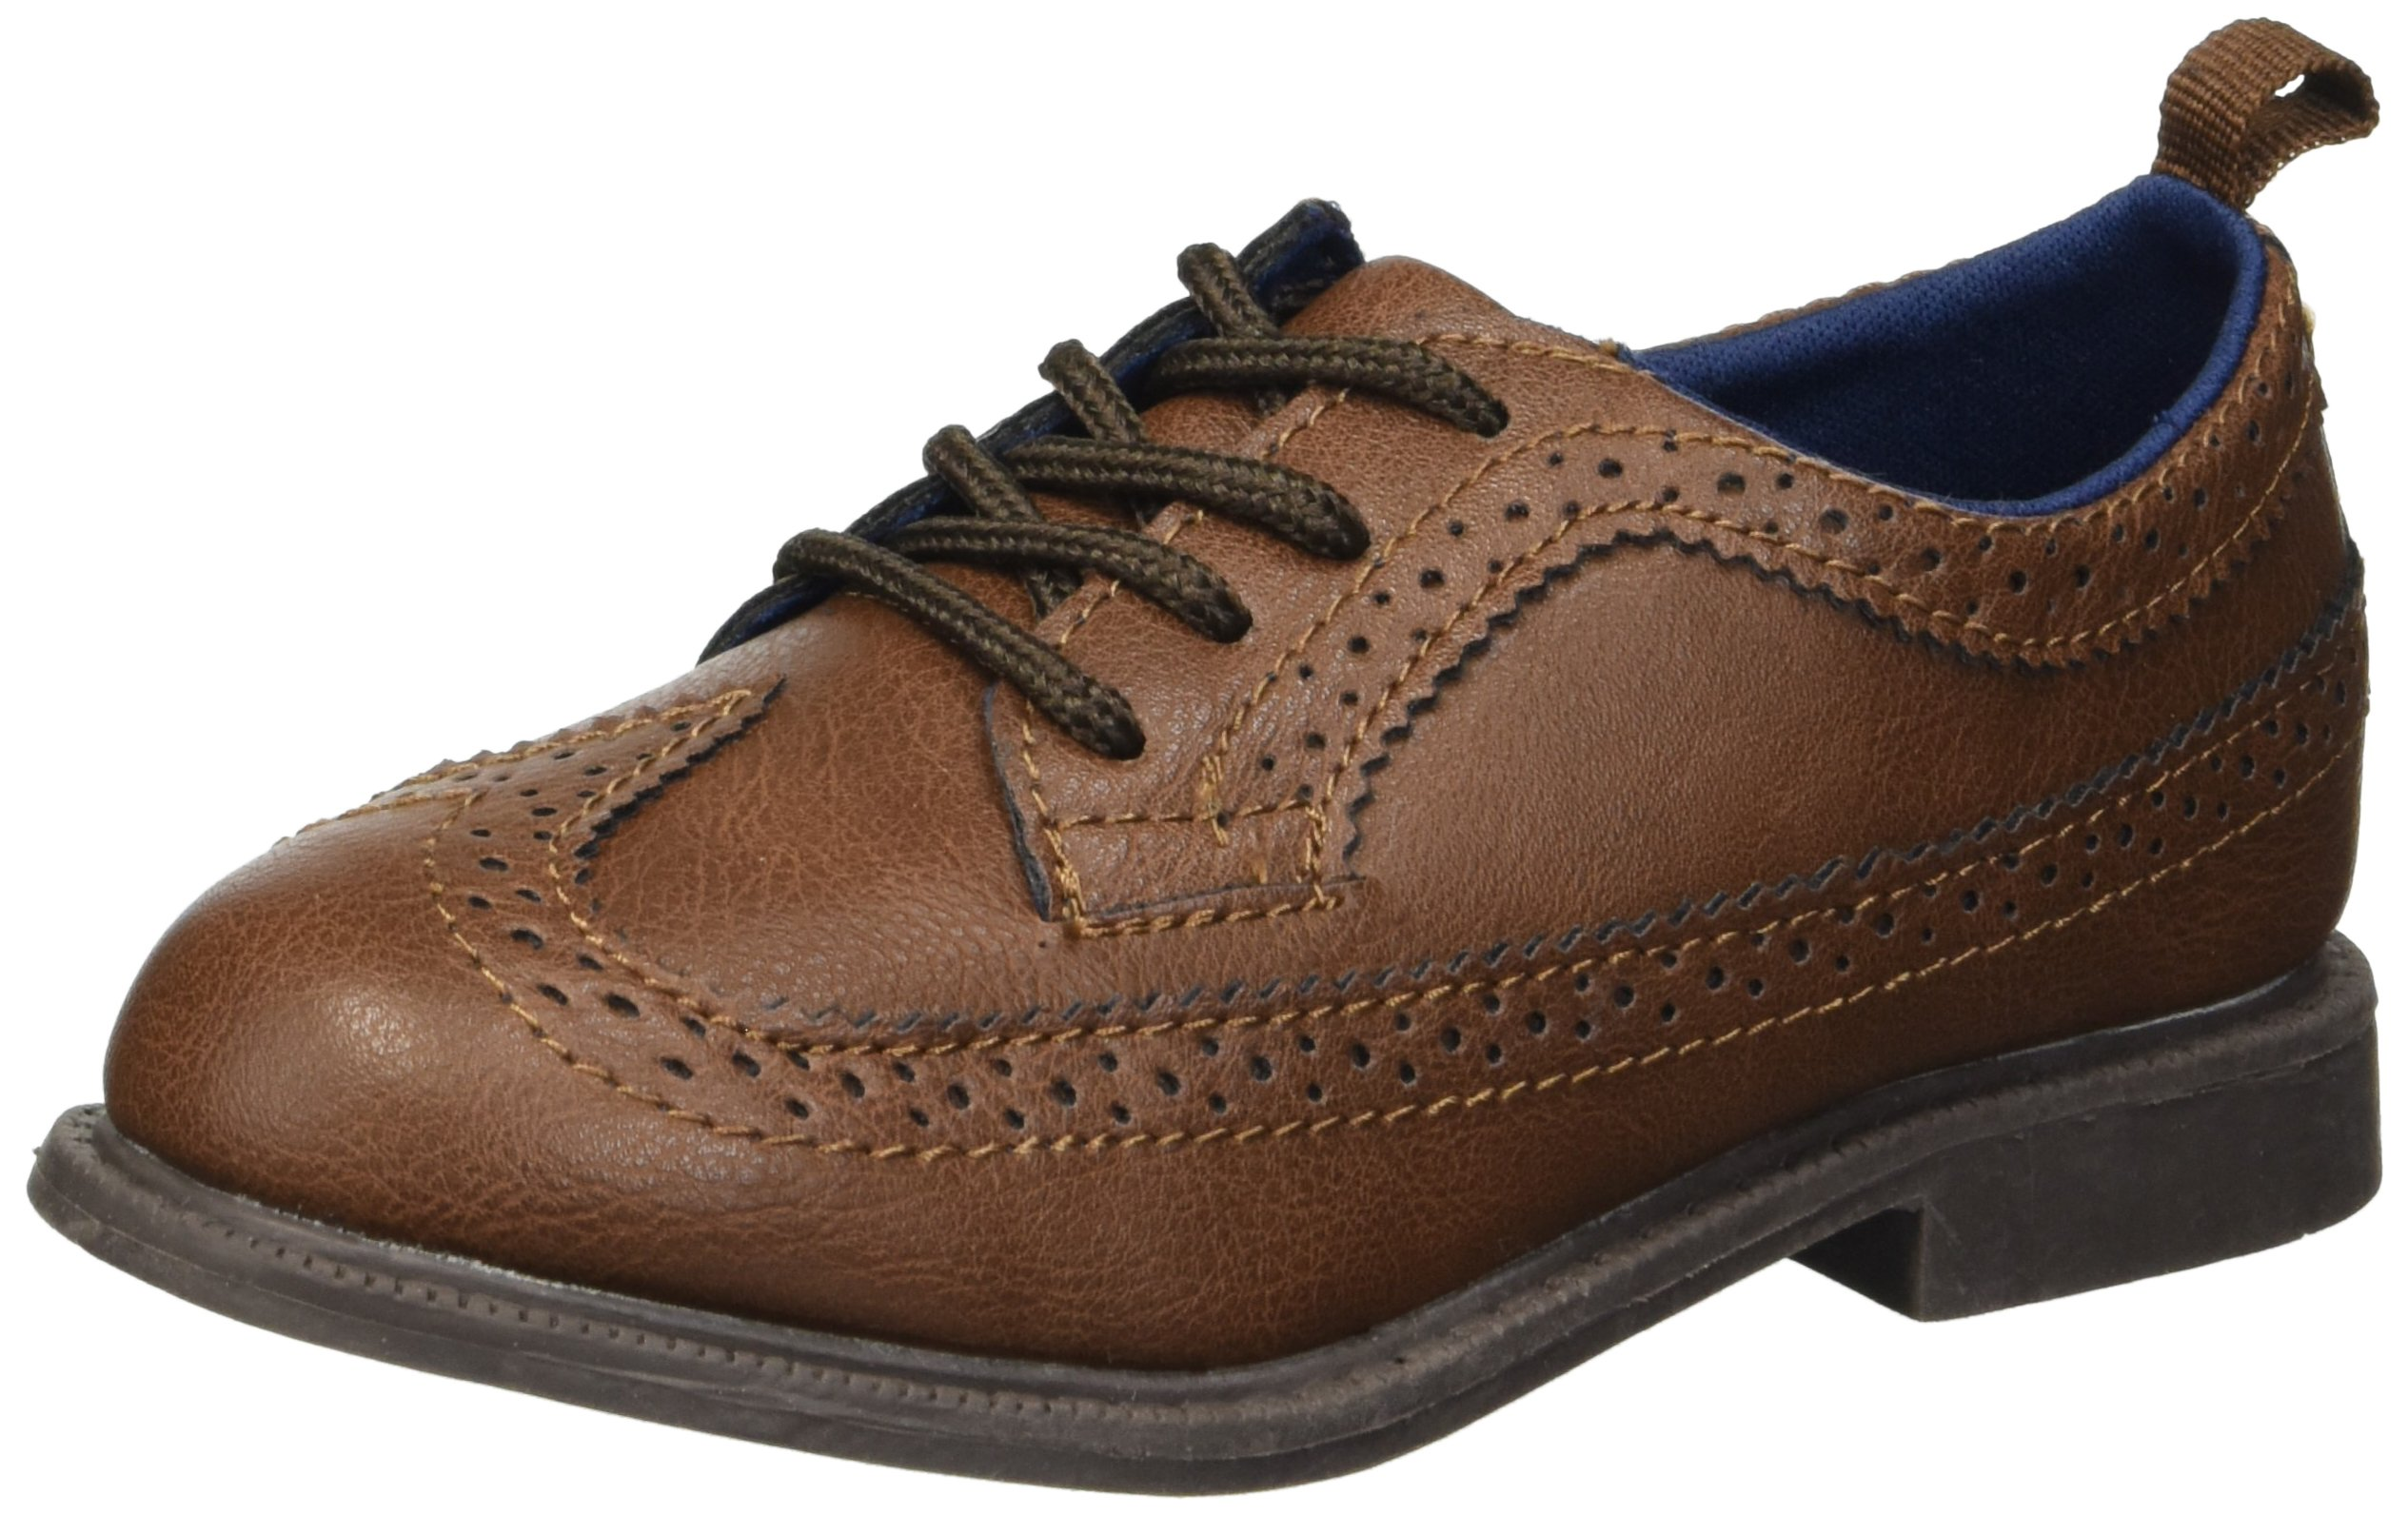 Carter's Boys' Oxford5 Dress Shoe Oxford, Brown, 8 M US Toddler